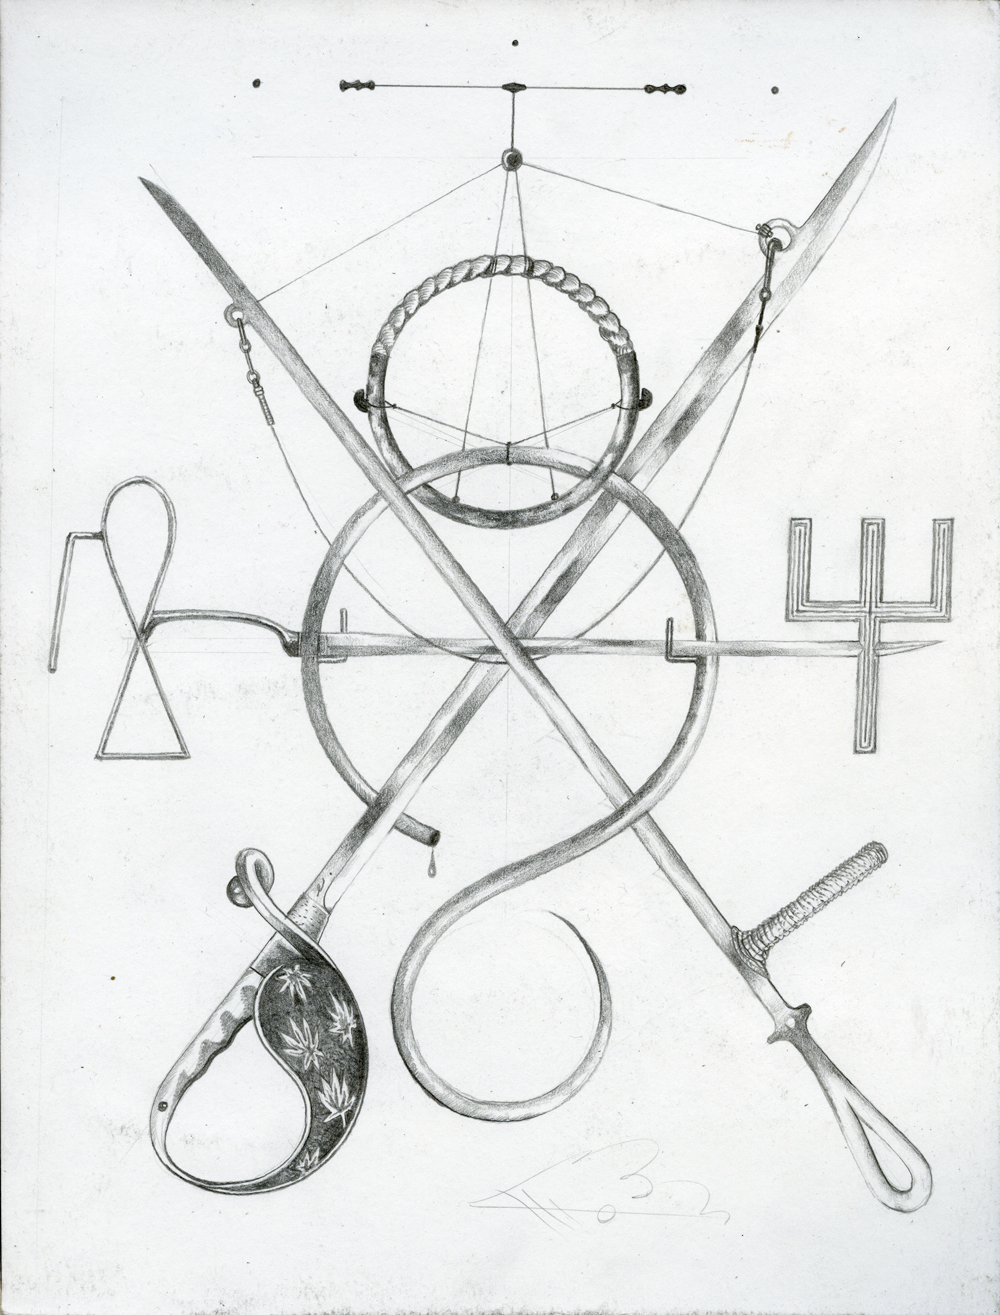 Eric Timothy Carlson, Key Glyph Sigil in Rope and Alloy, 2014